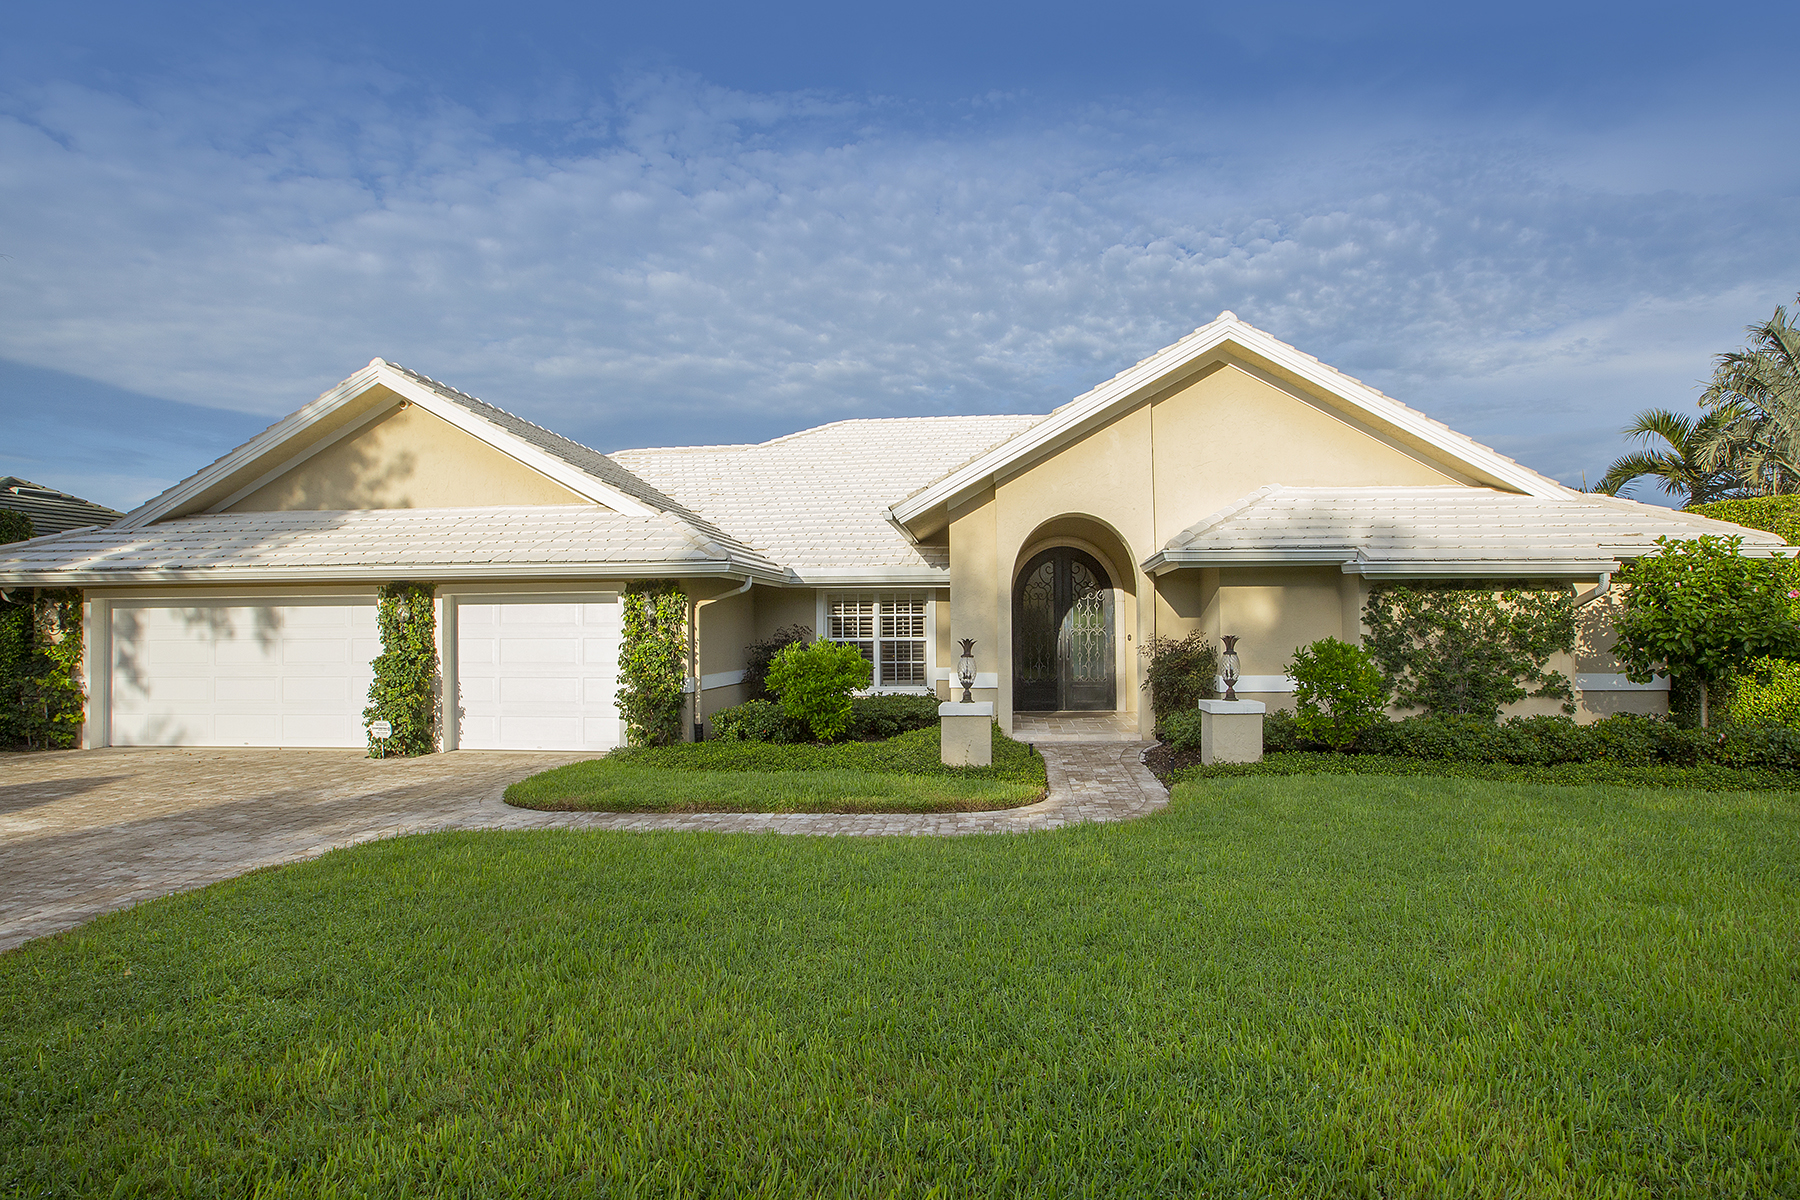 Single Family Home for Sale at PELICAN BAY 6577 Ridgewood Dr Naples, Florida, 34108 United States